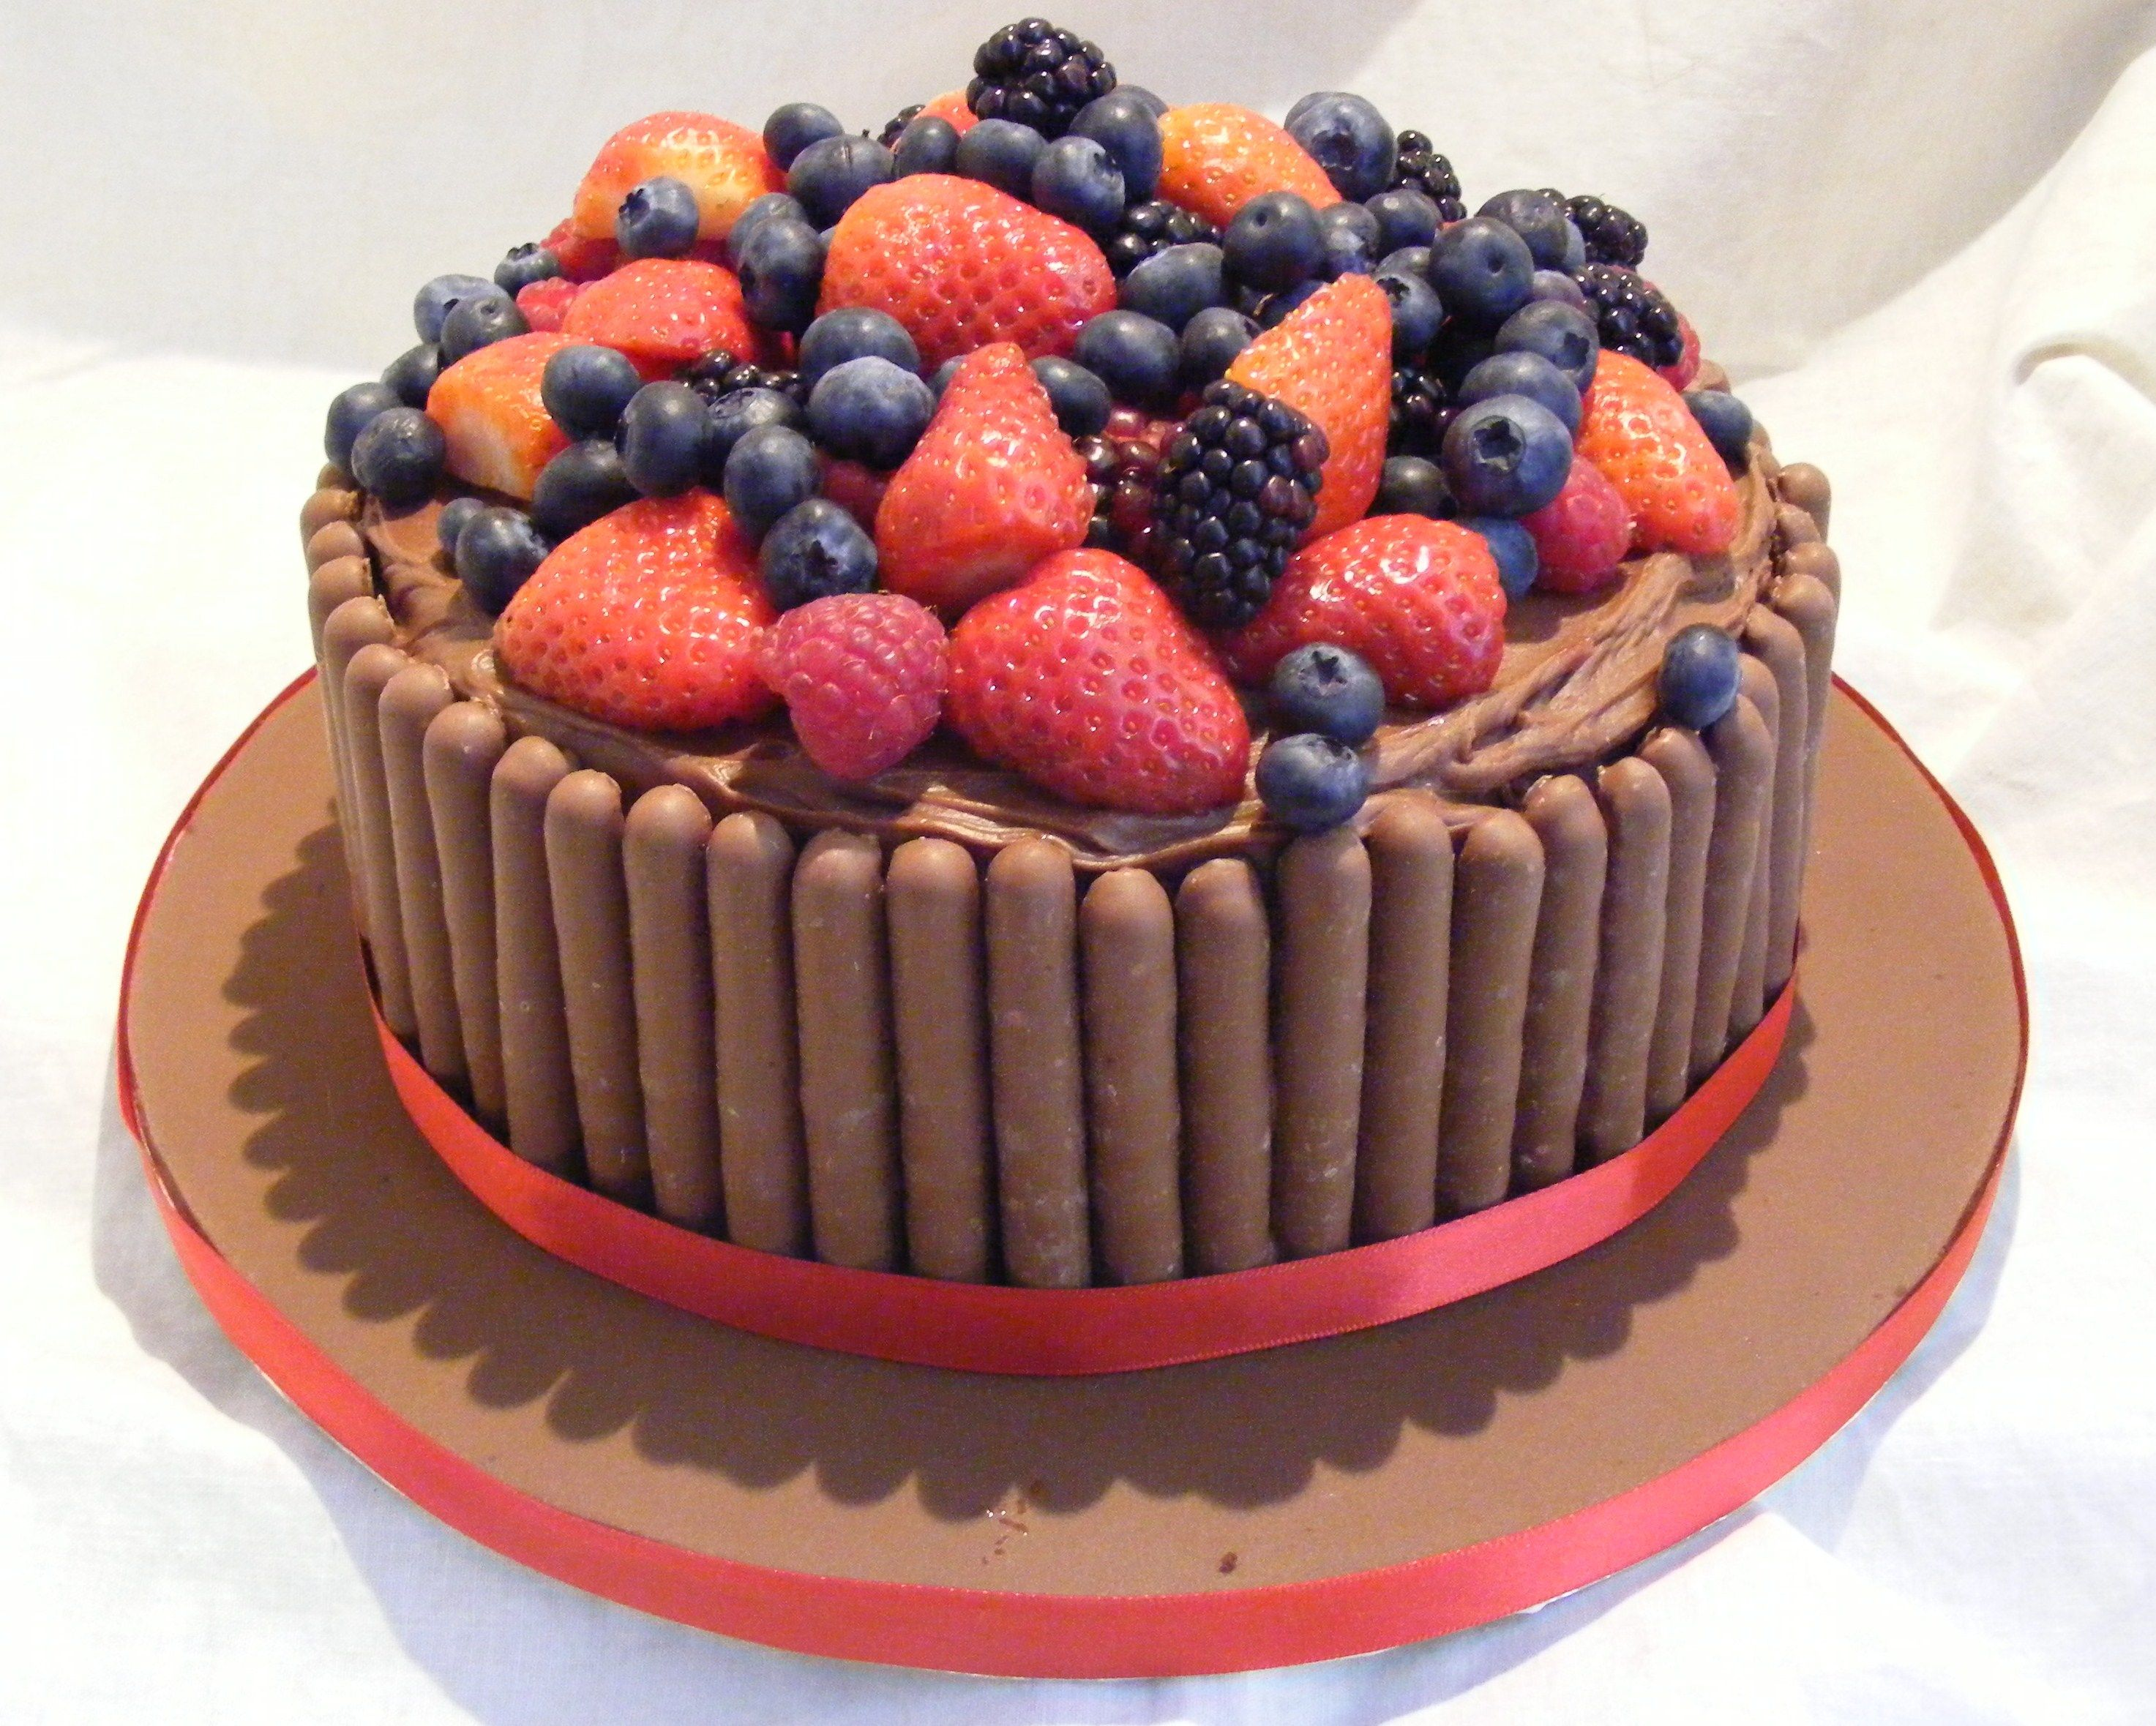 Chocolate fudge cake topped with fresh mixed berries and